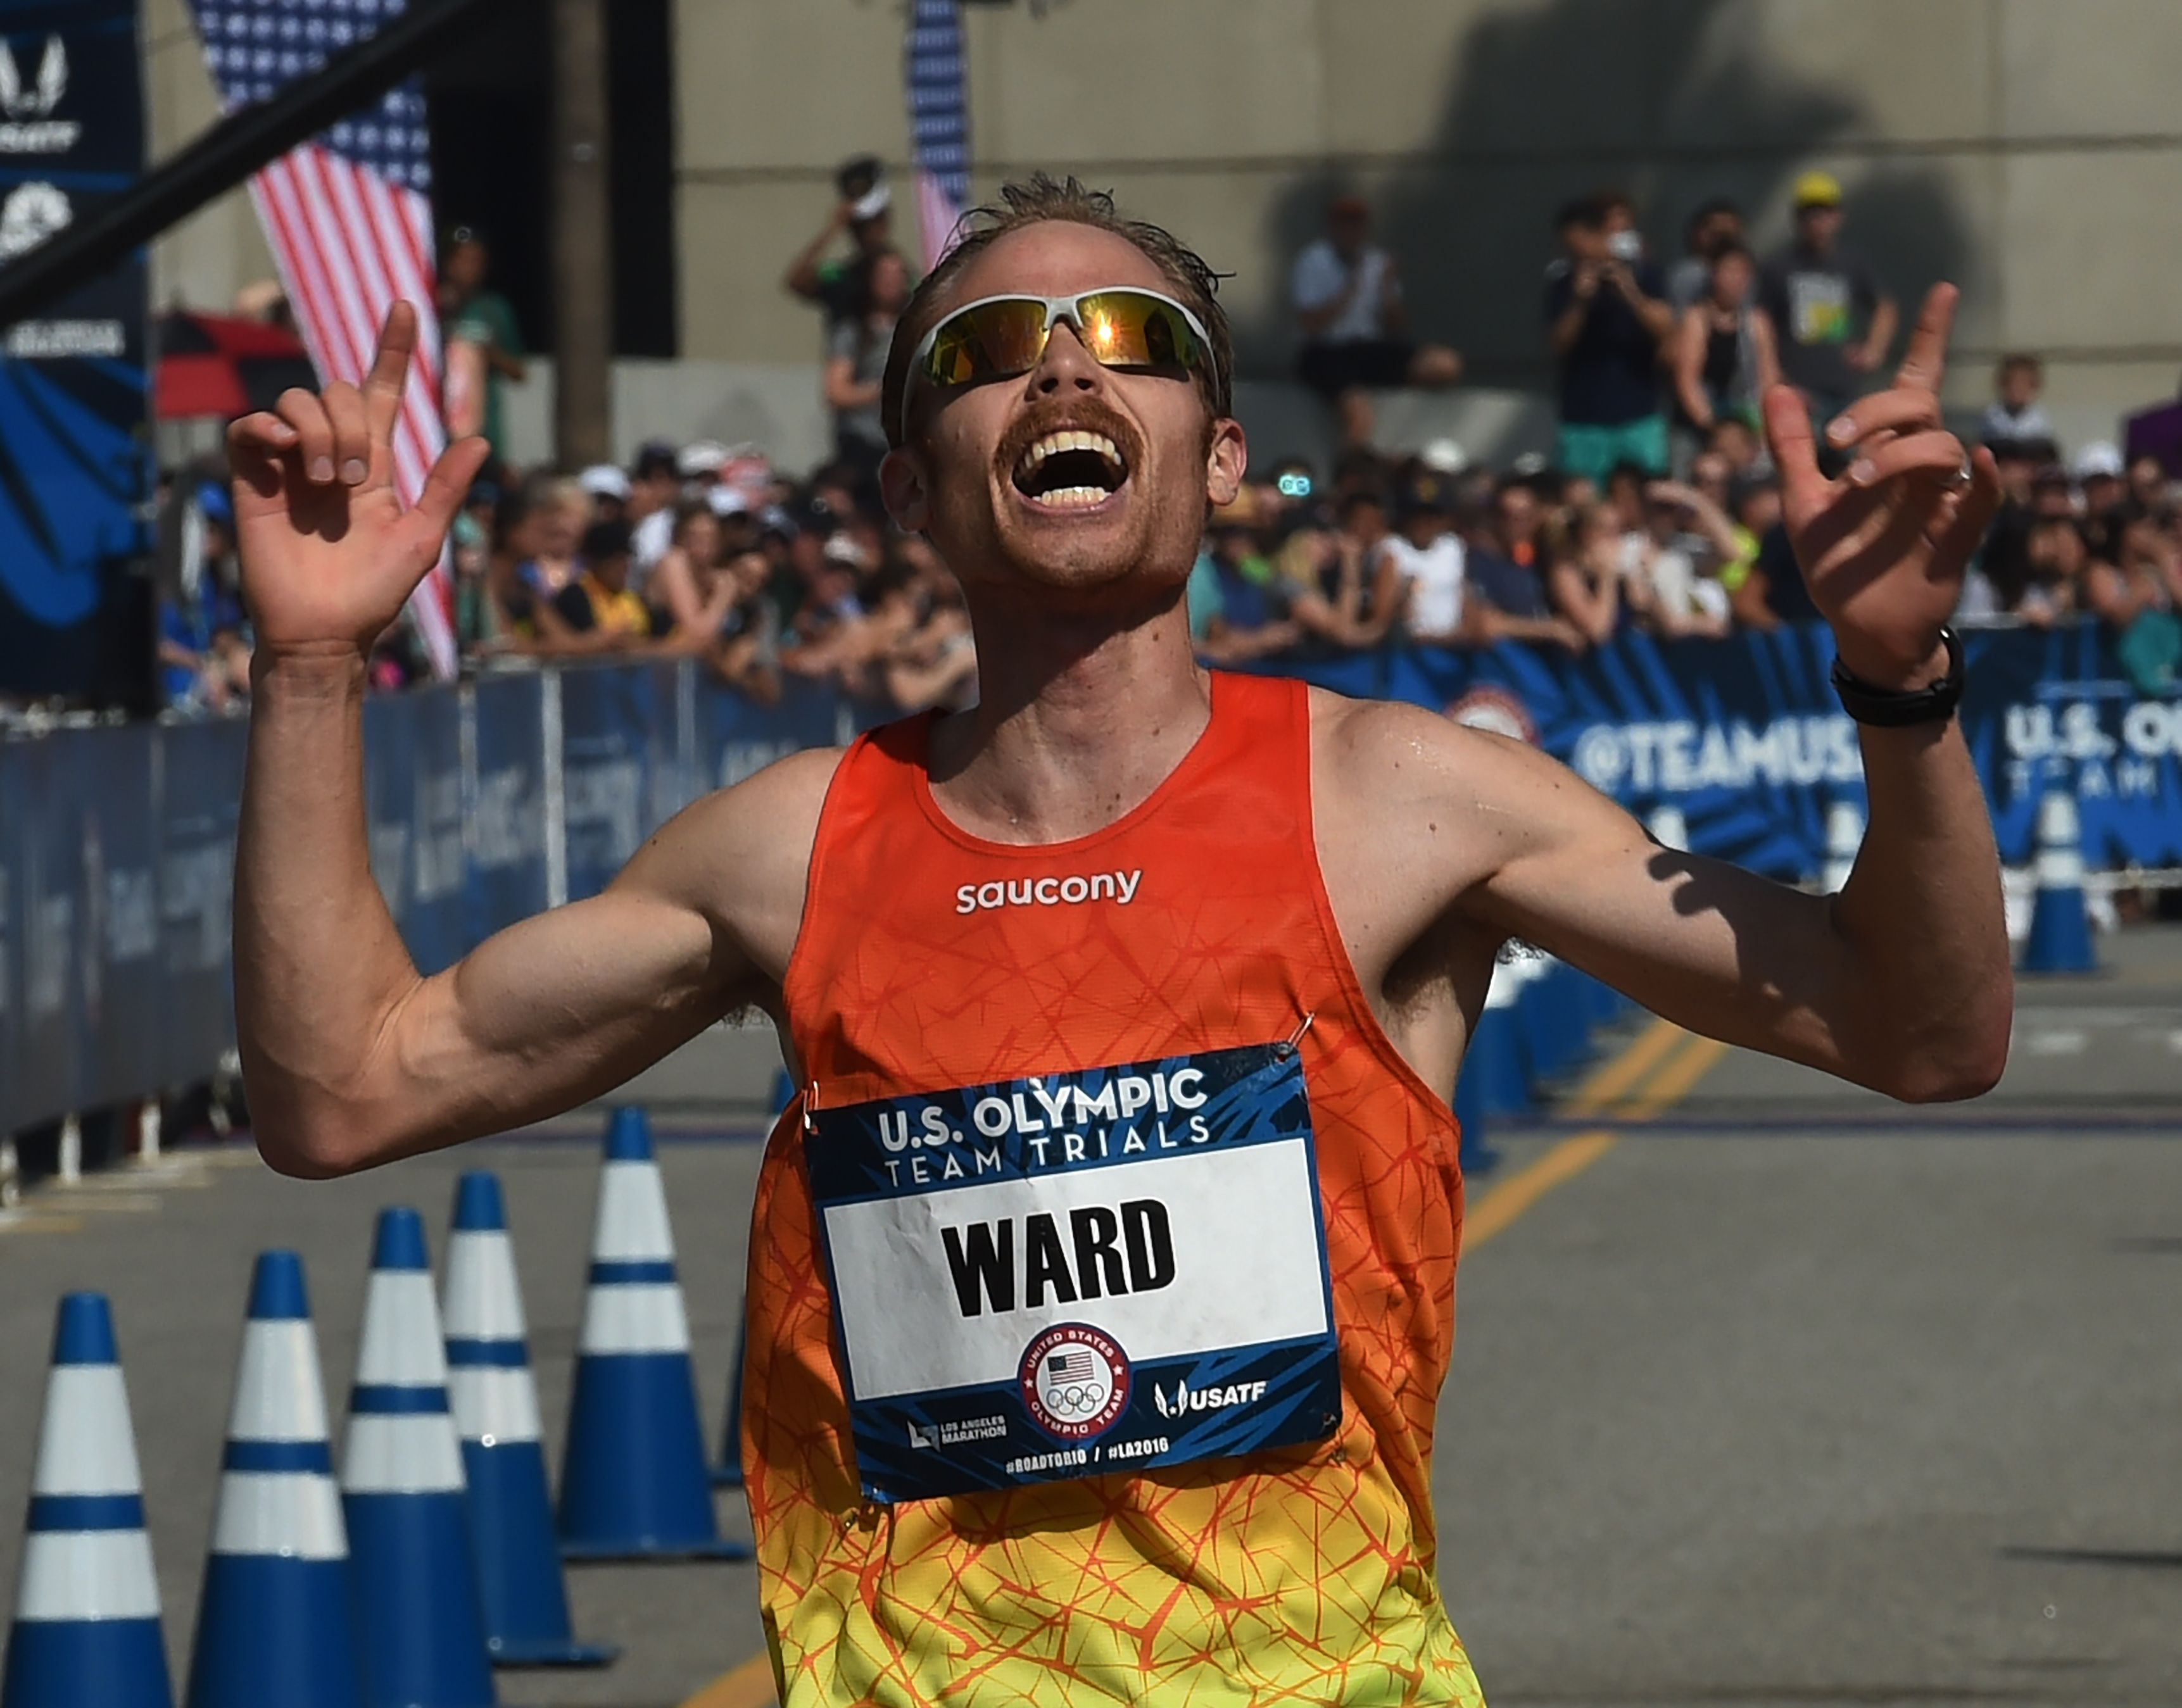 Guide to the 2020 Olympic Marathon Trials